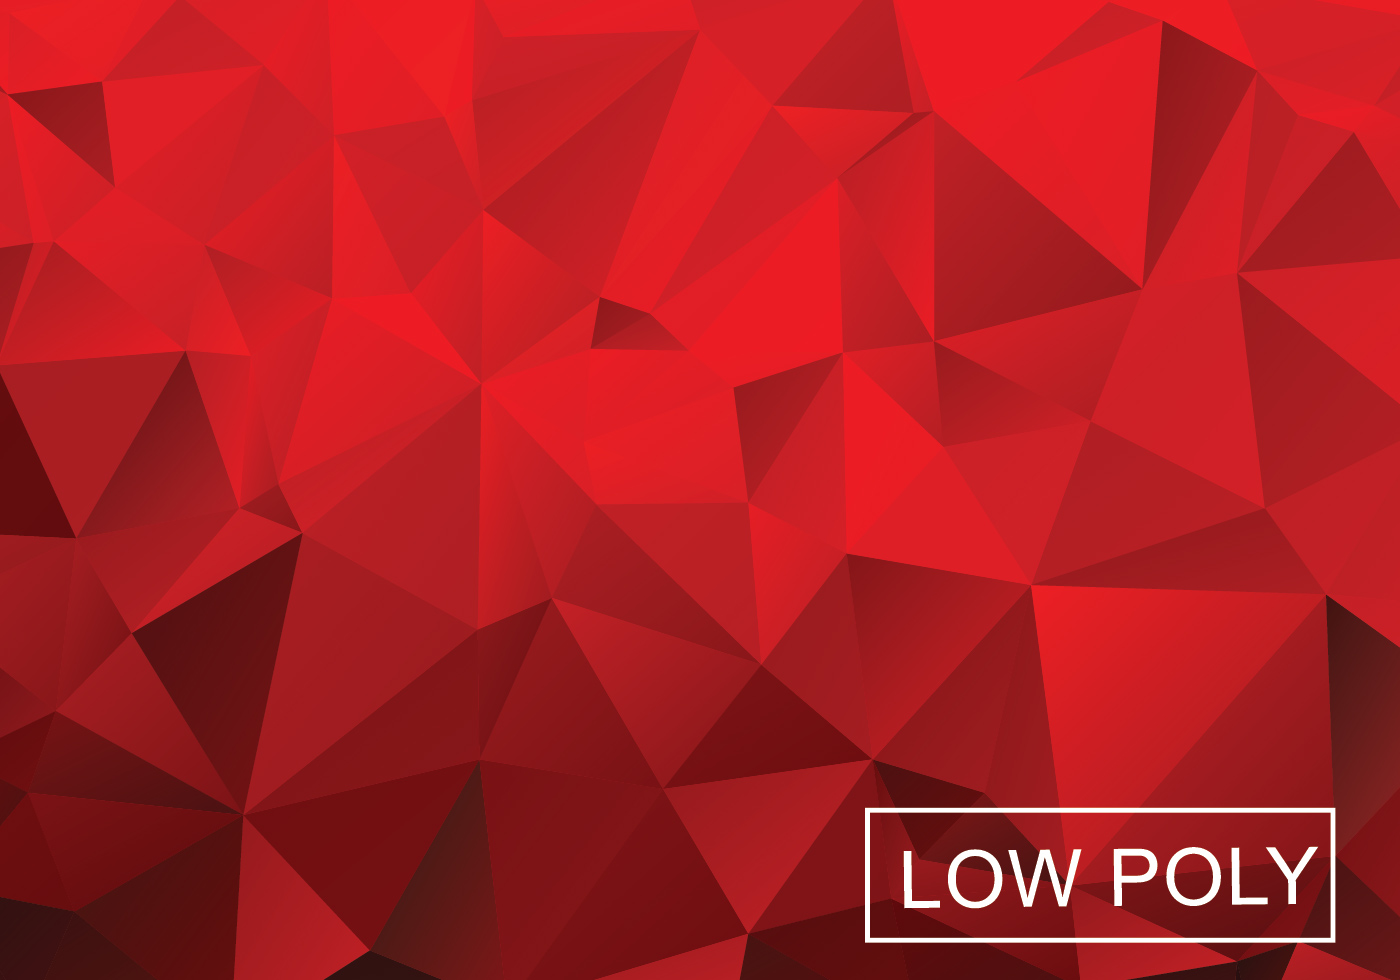 Low Poly Vector Background Download Free Vector Art